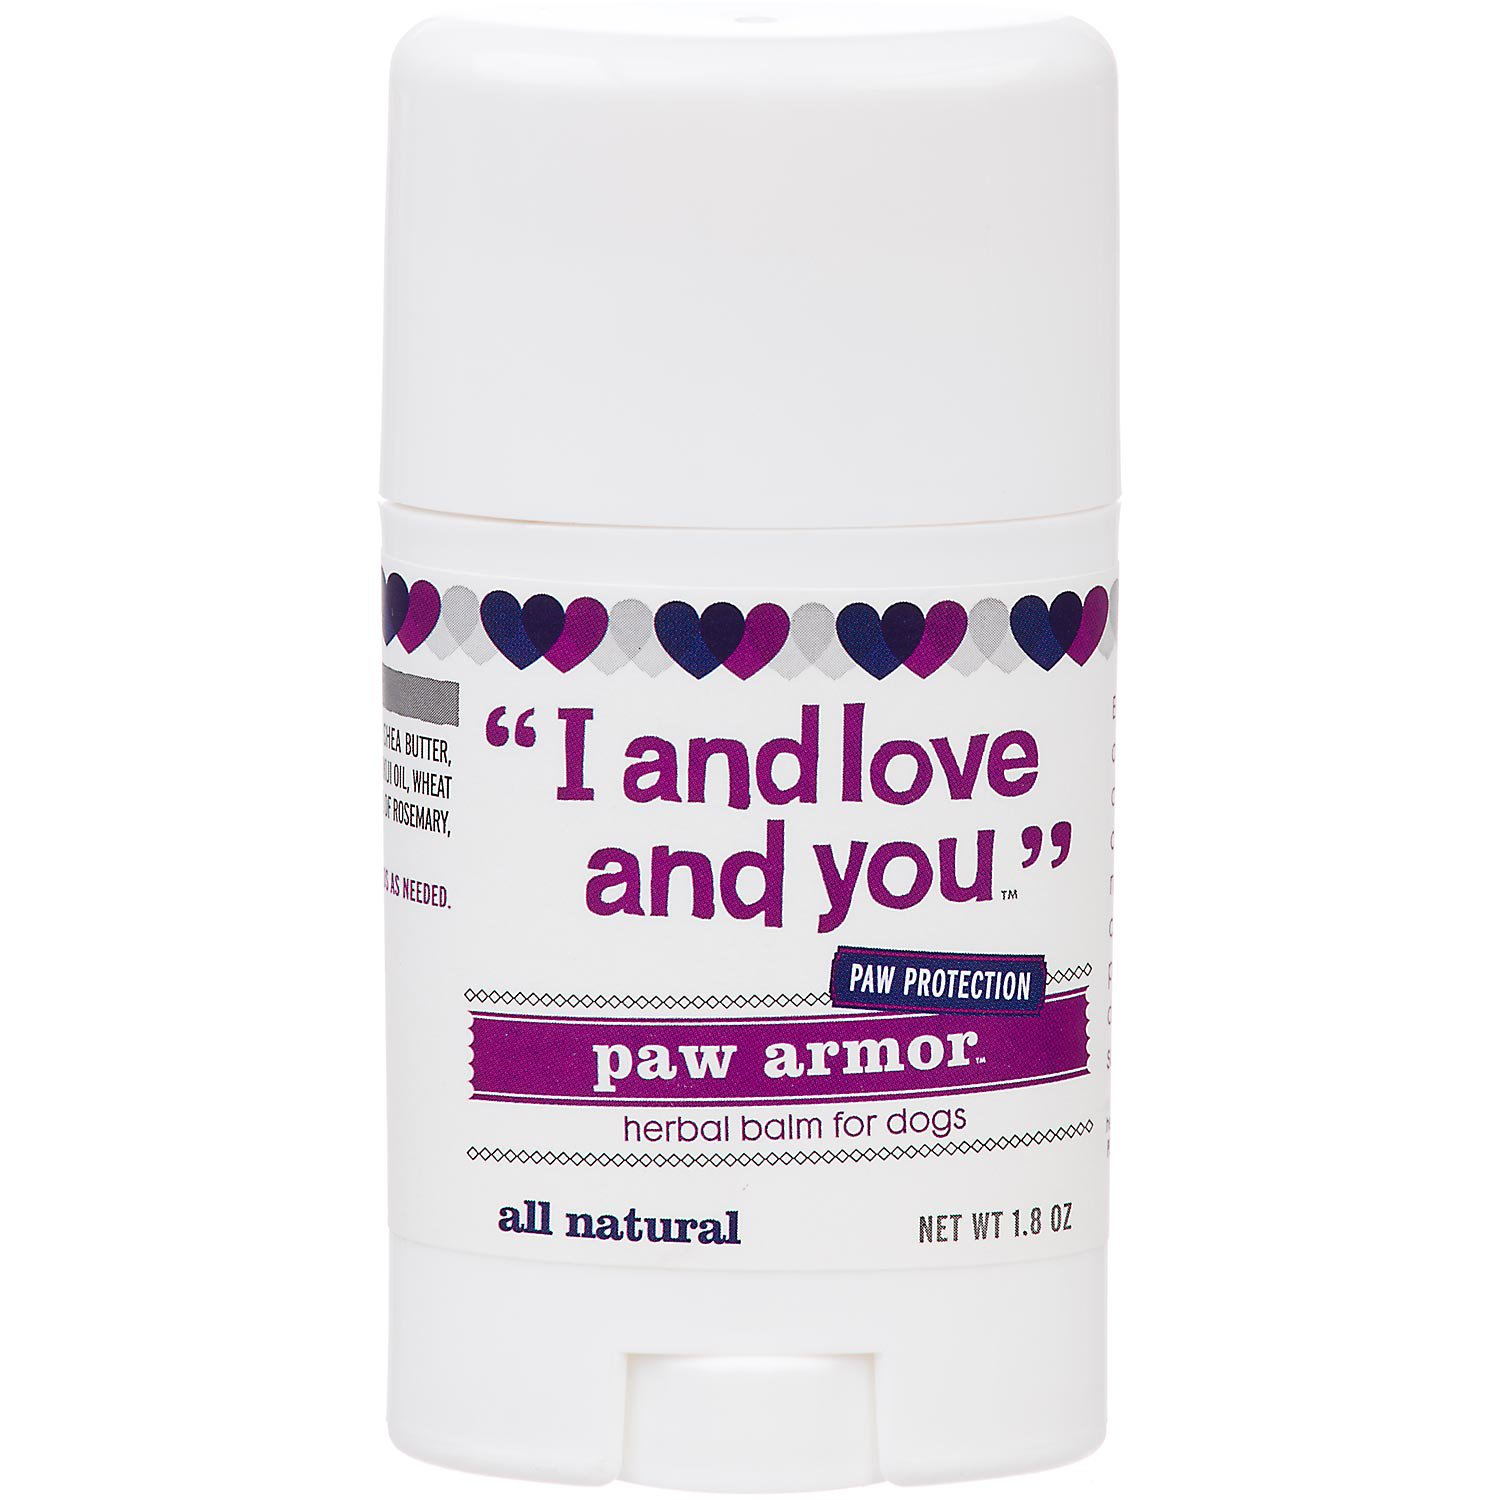 I and Love and You Paw Armor Pet Balm